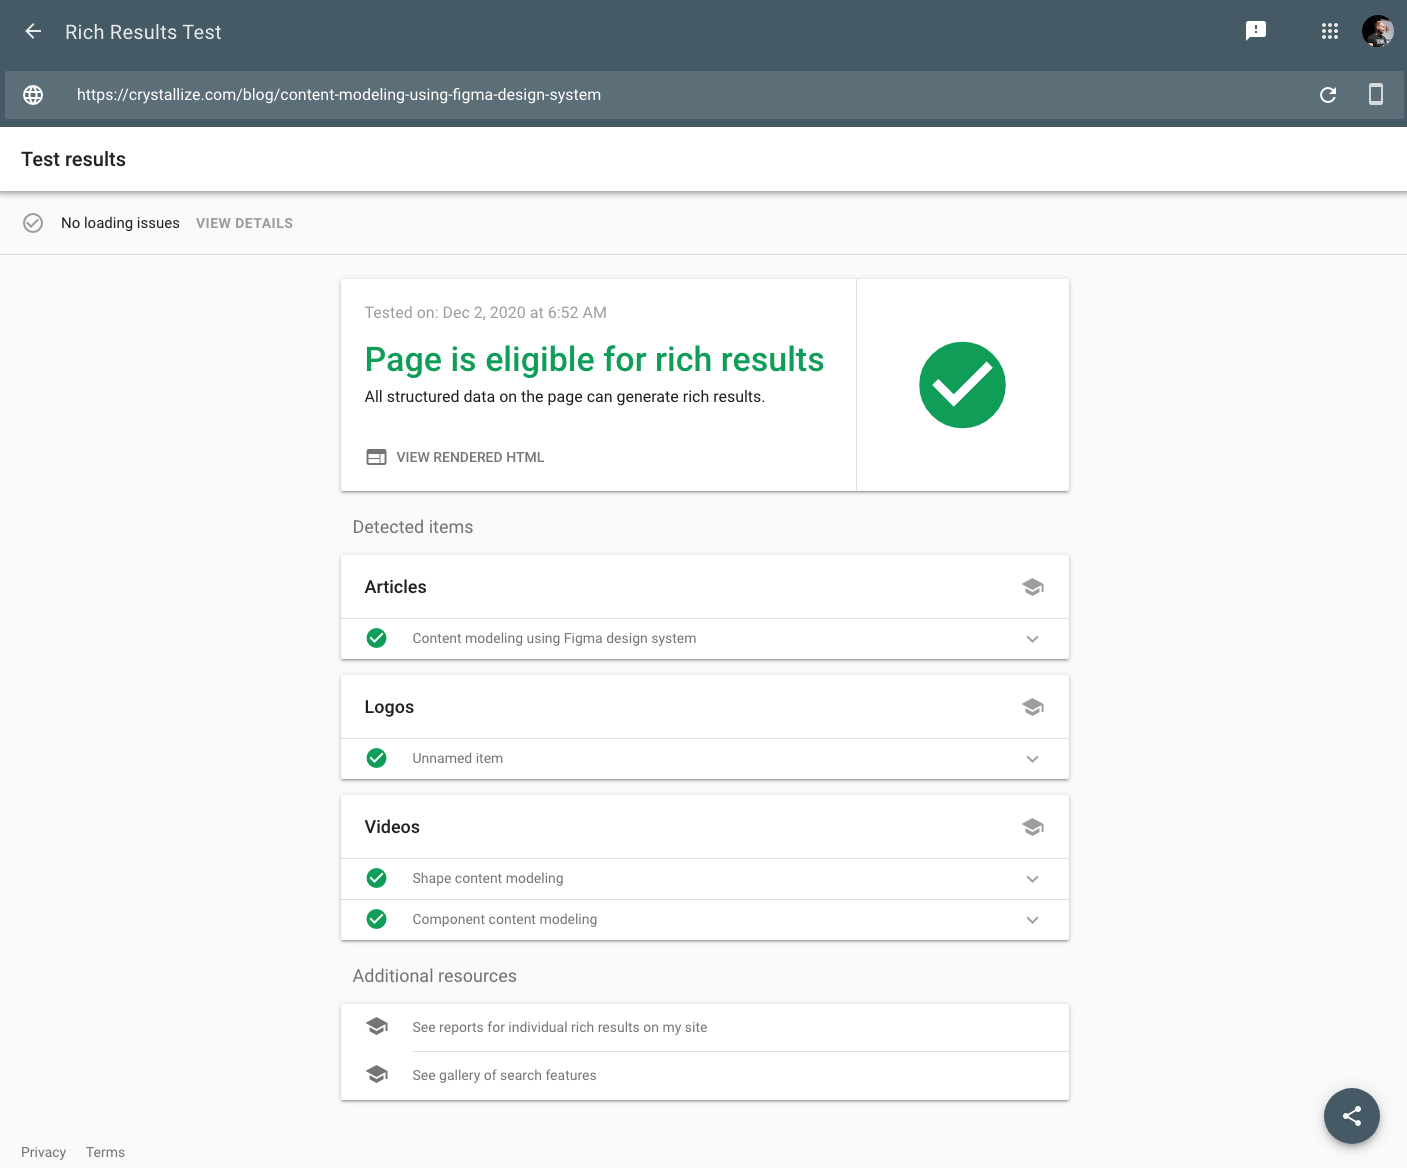 Rich results test screenshot